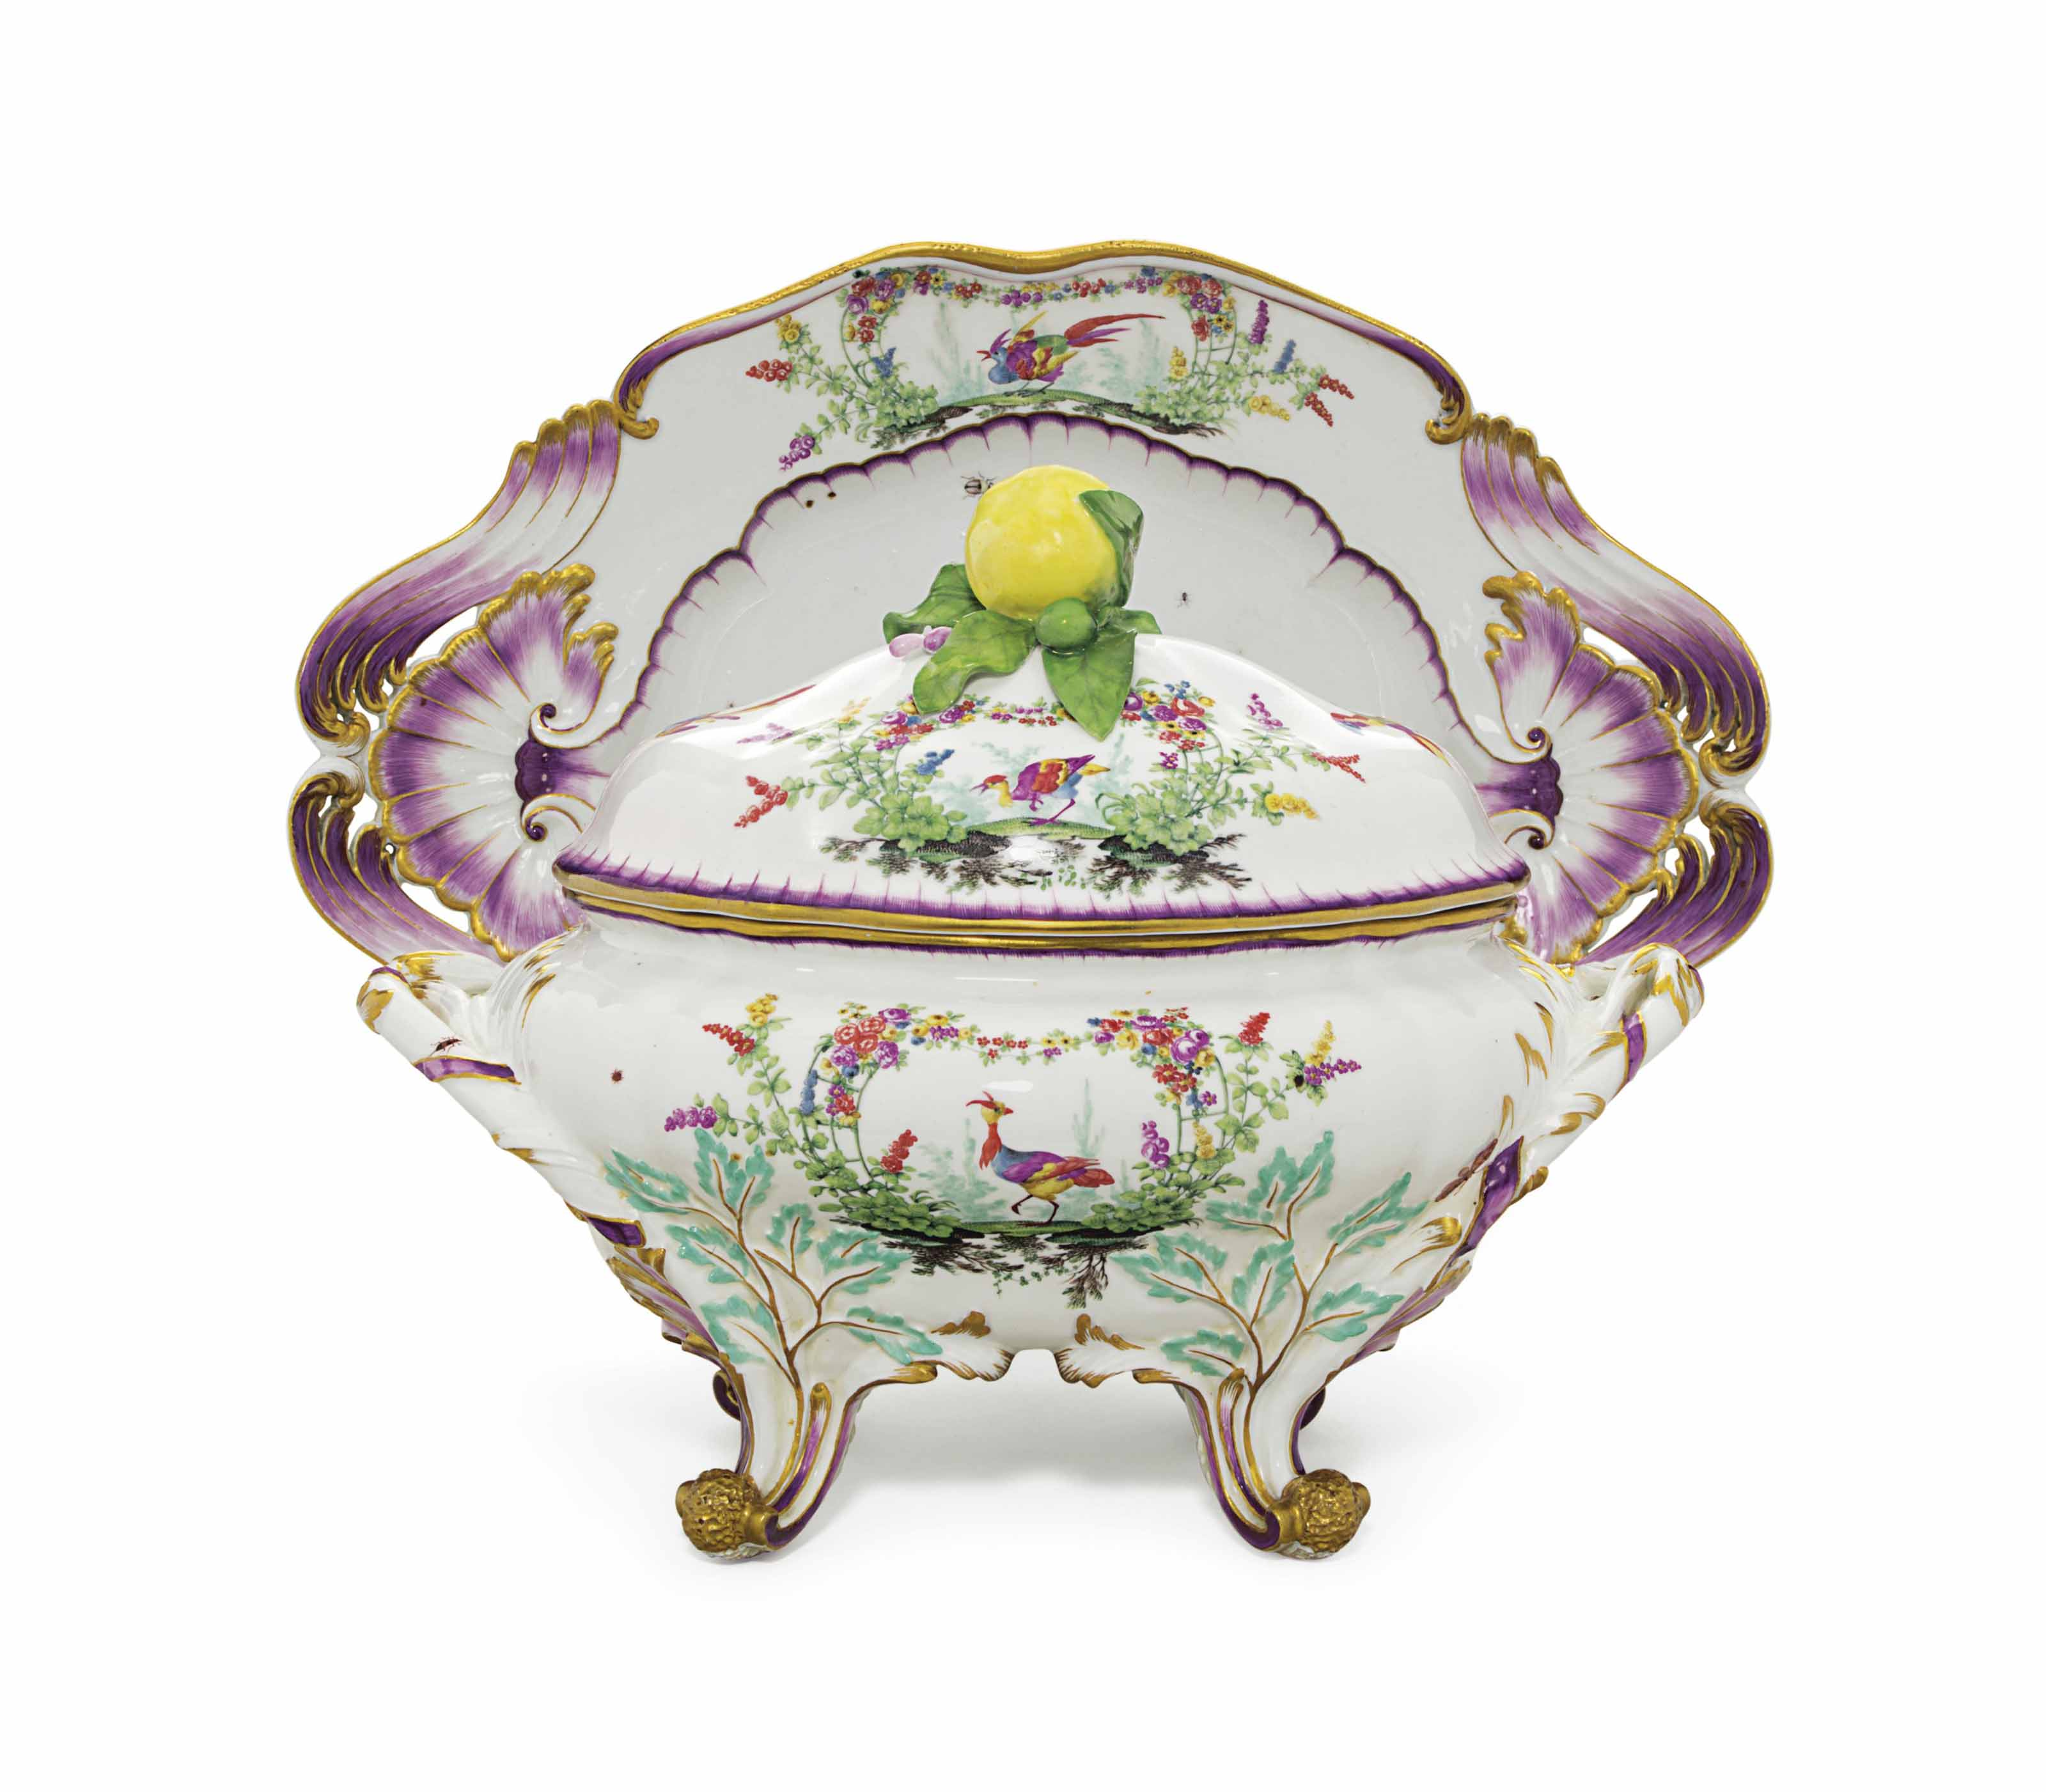 A MEISSEN PORCELAIN OVAL SOUP TUREEN, COVER AND STAND